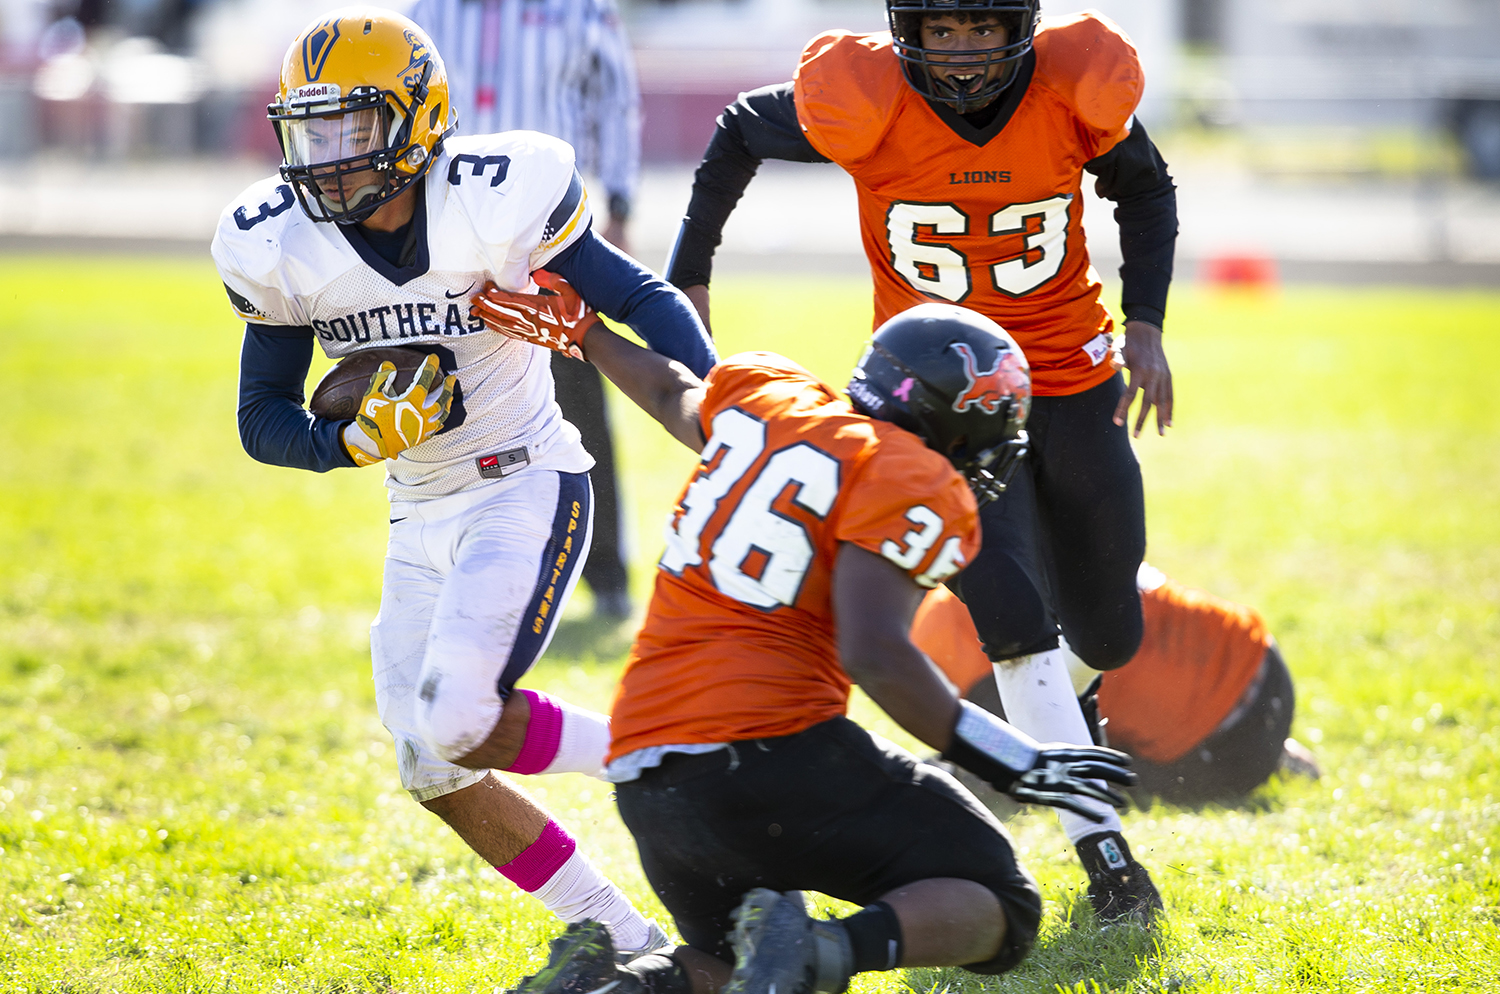 Southeast's Decorian Sexton breaks past the Lanphier defense at Memorial Stadium Saturday, Oct. 20, 2018 in Springfield, Ill. [Rich Saal/The State Journal-Register]